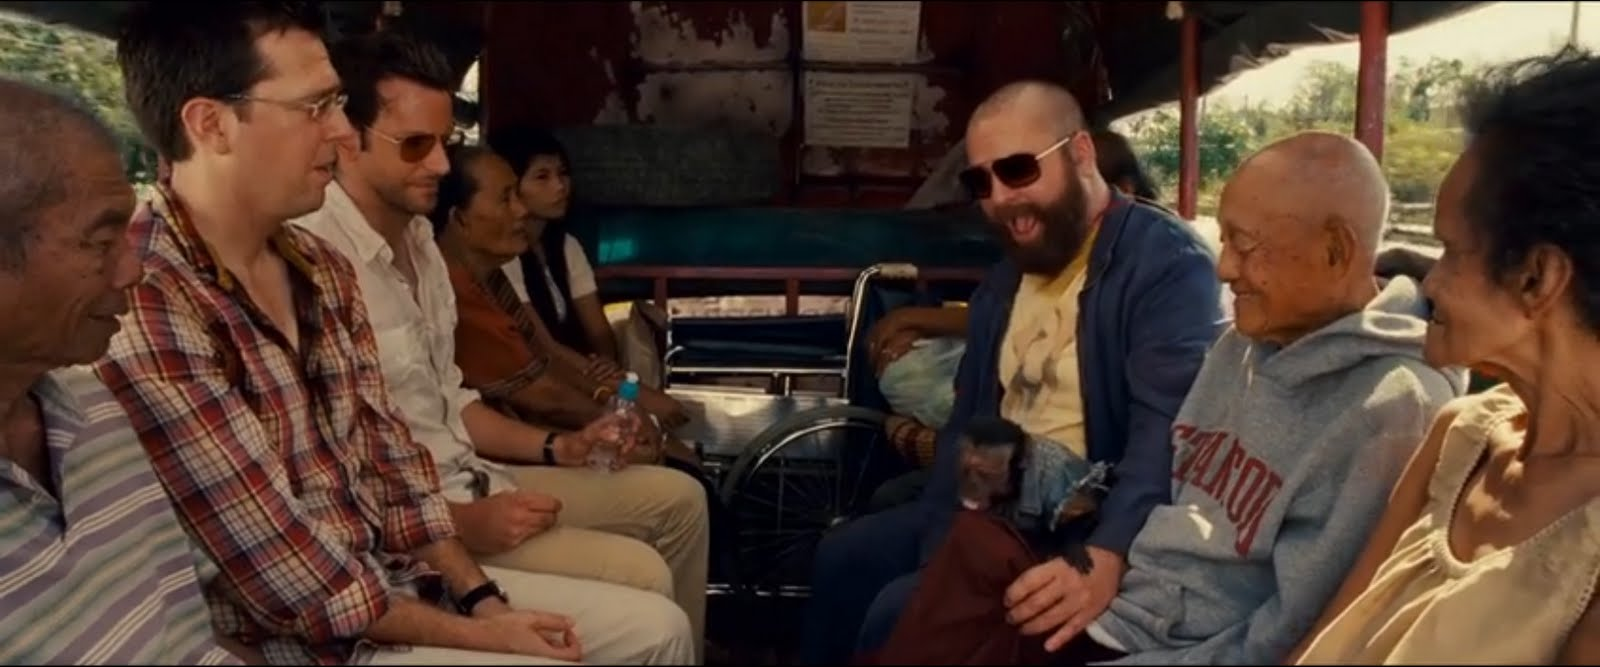 Is The Hangover 2 an awesome movie  No The Hangover 2 Chow